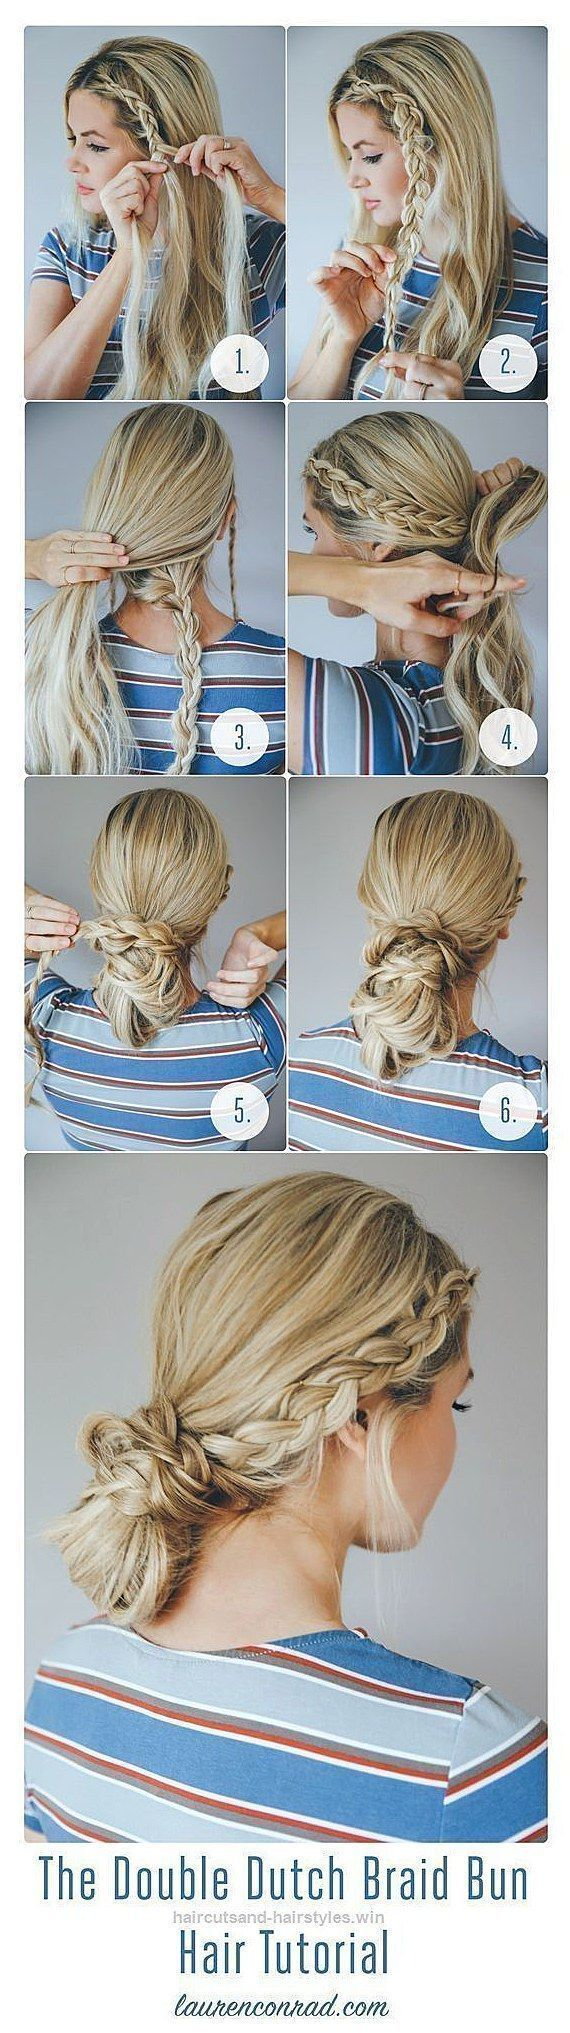 #Braided #Click #Cool #Easy #Fitness #guess -